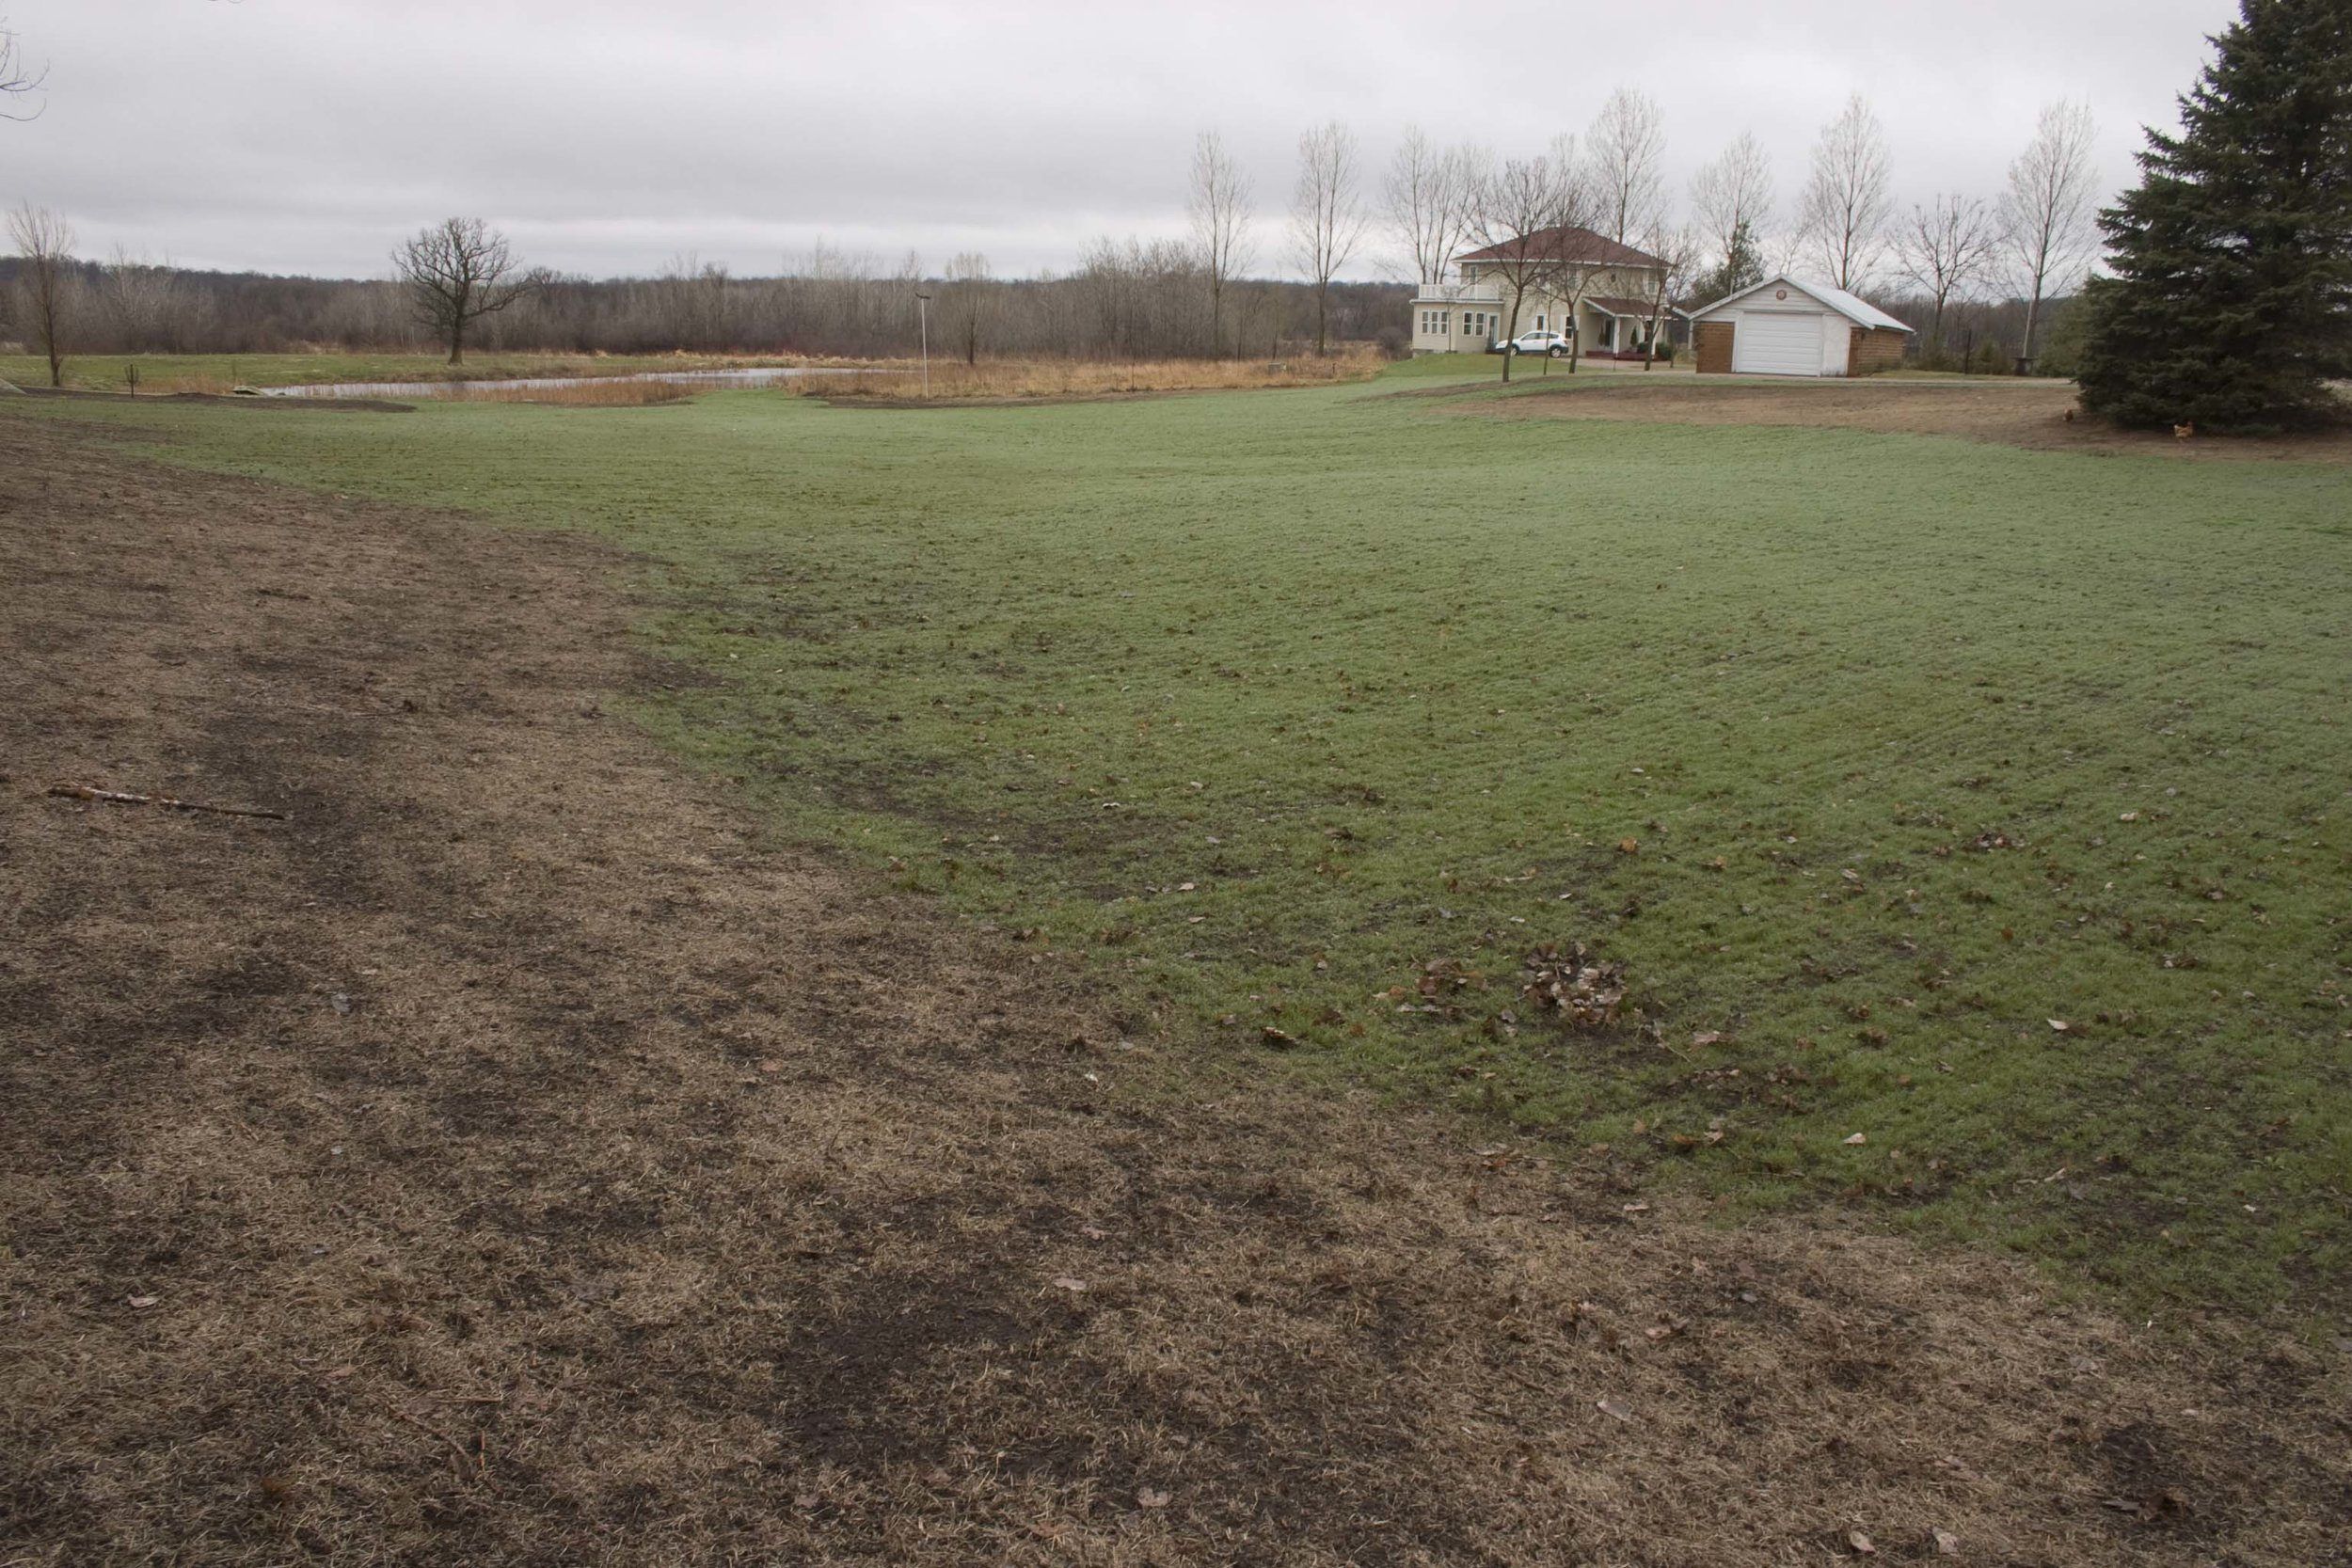 Here is the same area, probably photographed in October that same year. One sees the grass coming up on its own. It should also be said that the weeds are not germinating in the fall, and so very few weeds came up in this seeding.